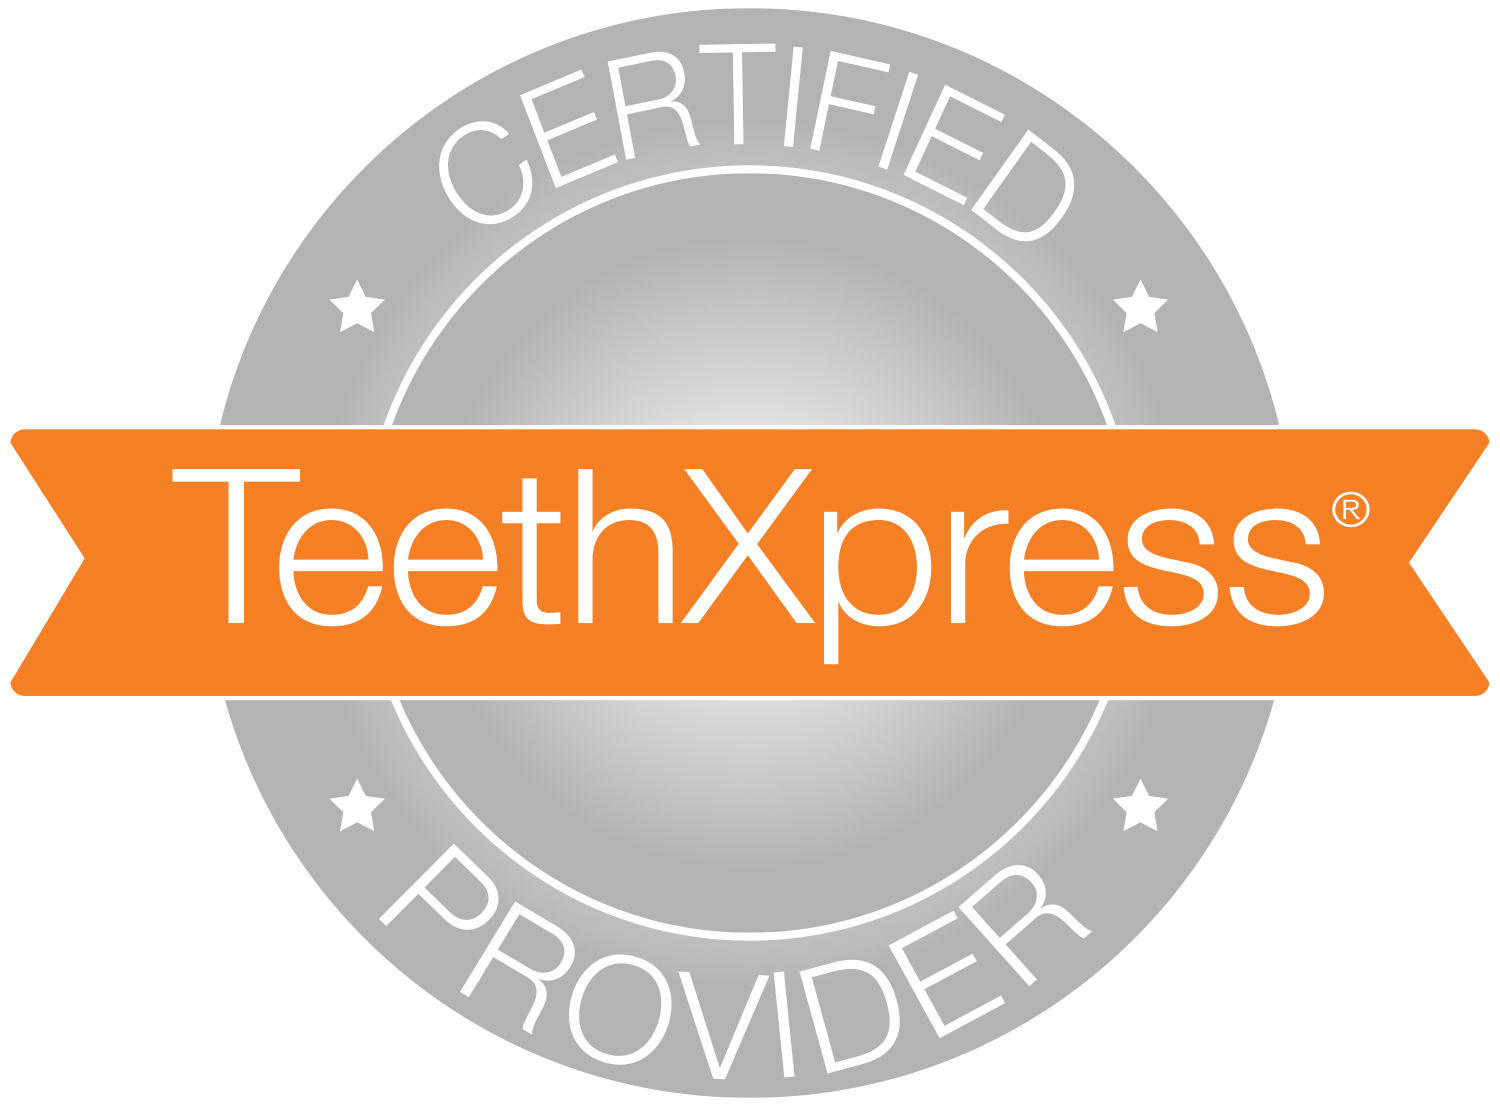 teethxpress logo